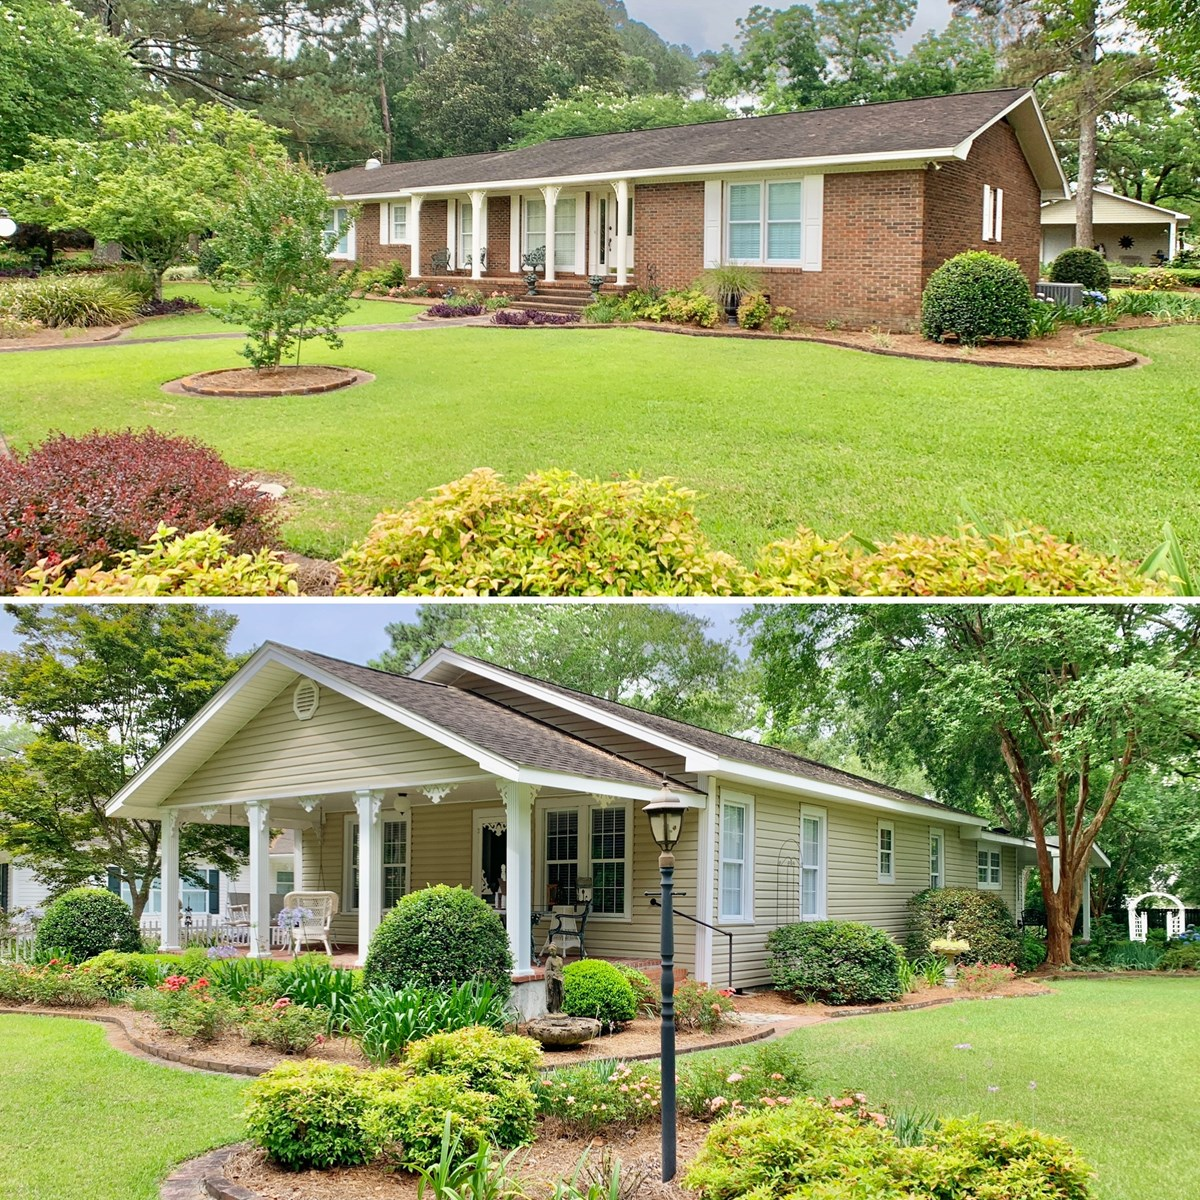 2 Homes for sale Samson Alabama - Mother in law suite